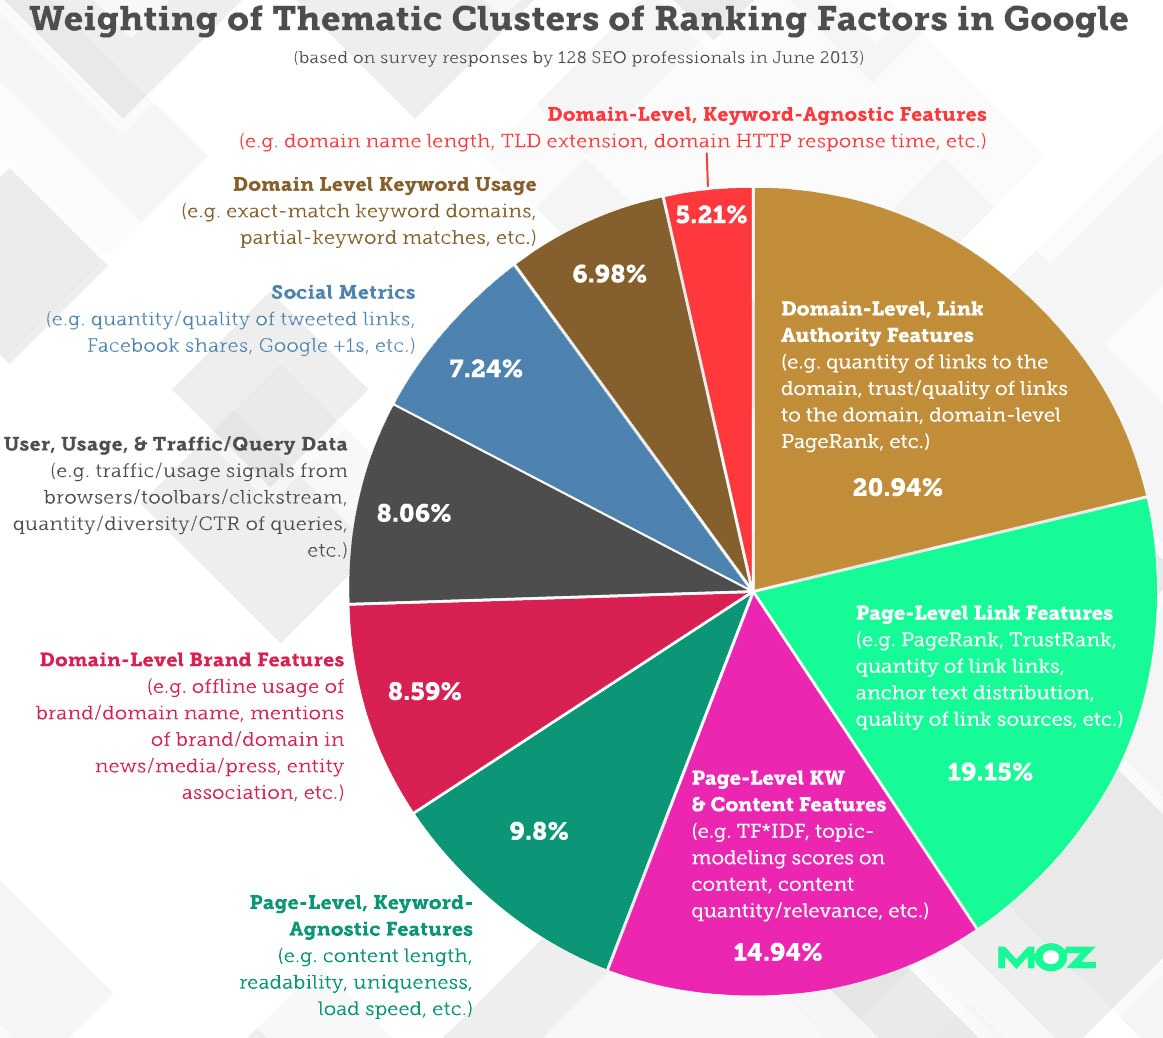 Weighting for Thematic Clusters of Ranking factors in Google - Parangat